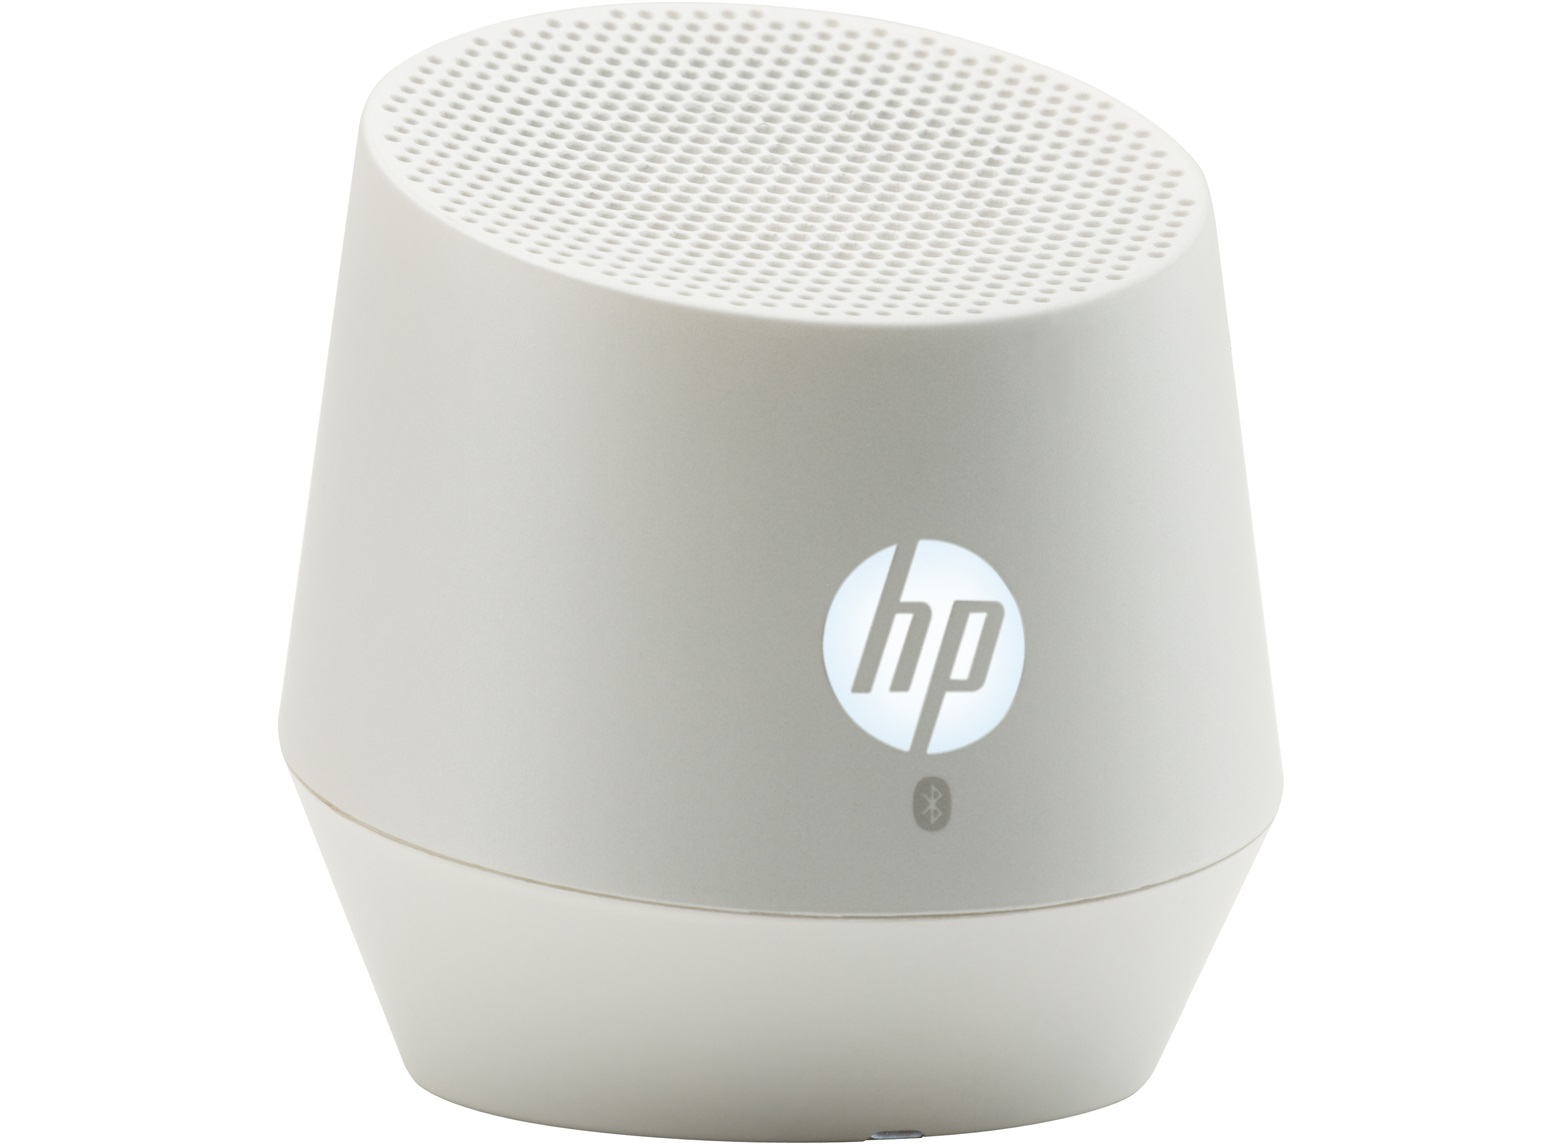 HP S6000 White Wireless Speaker